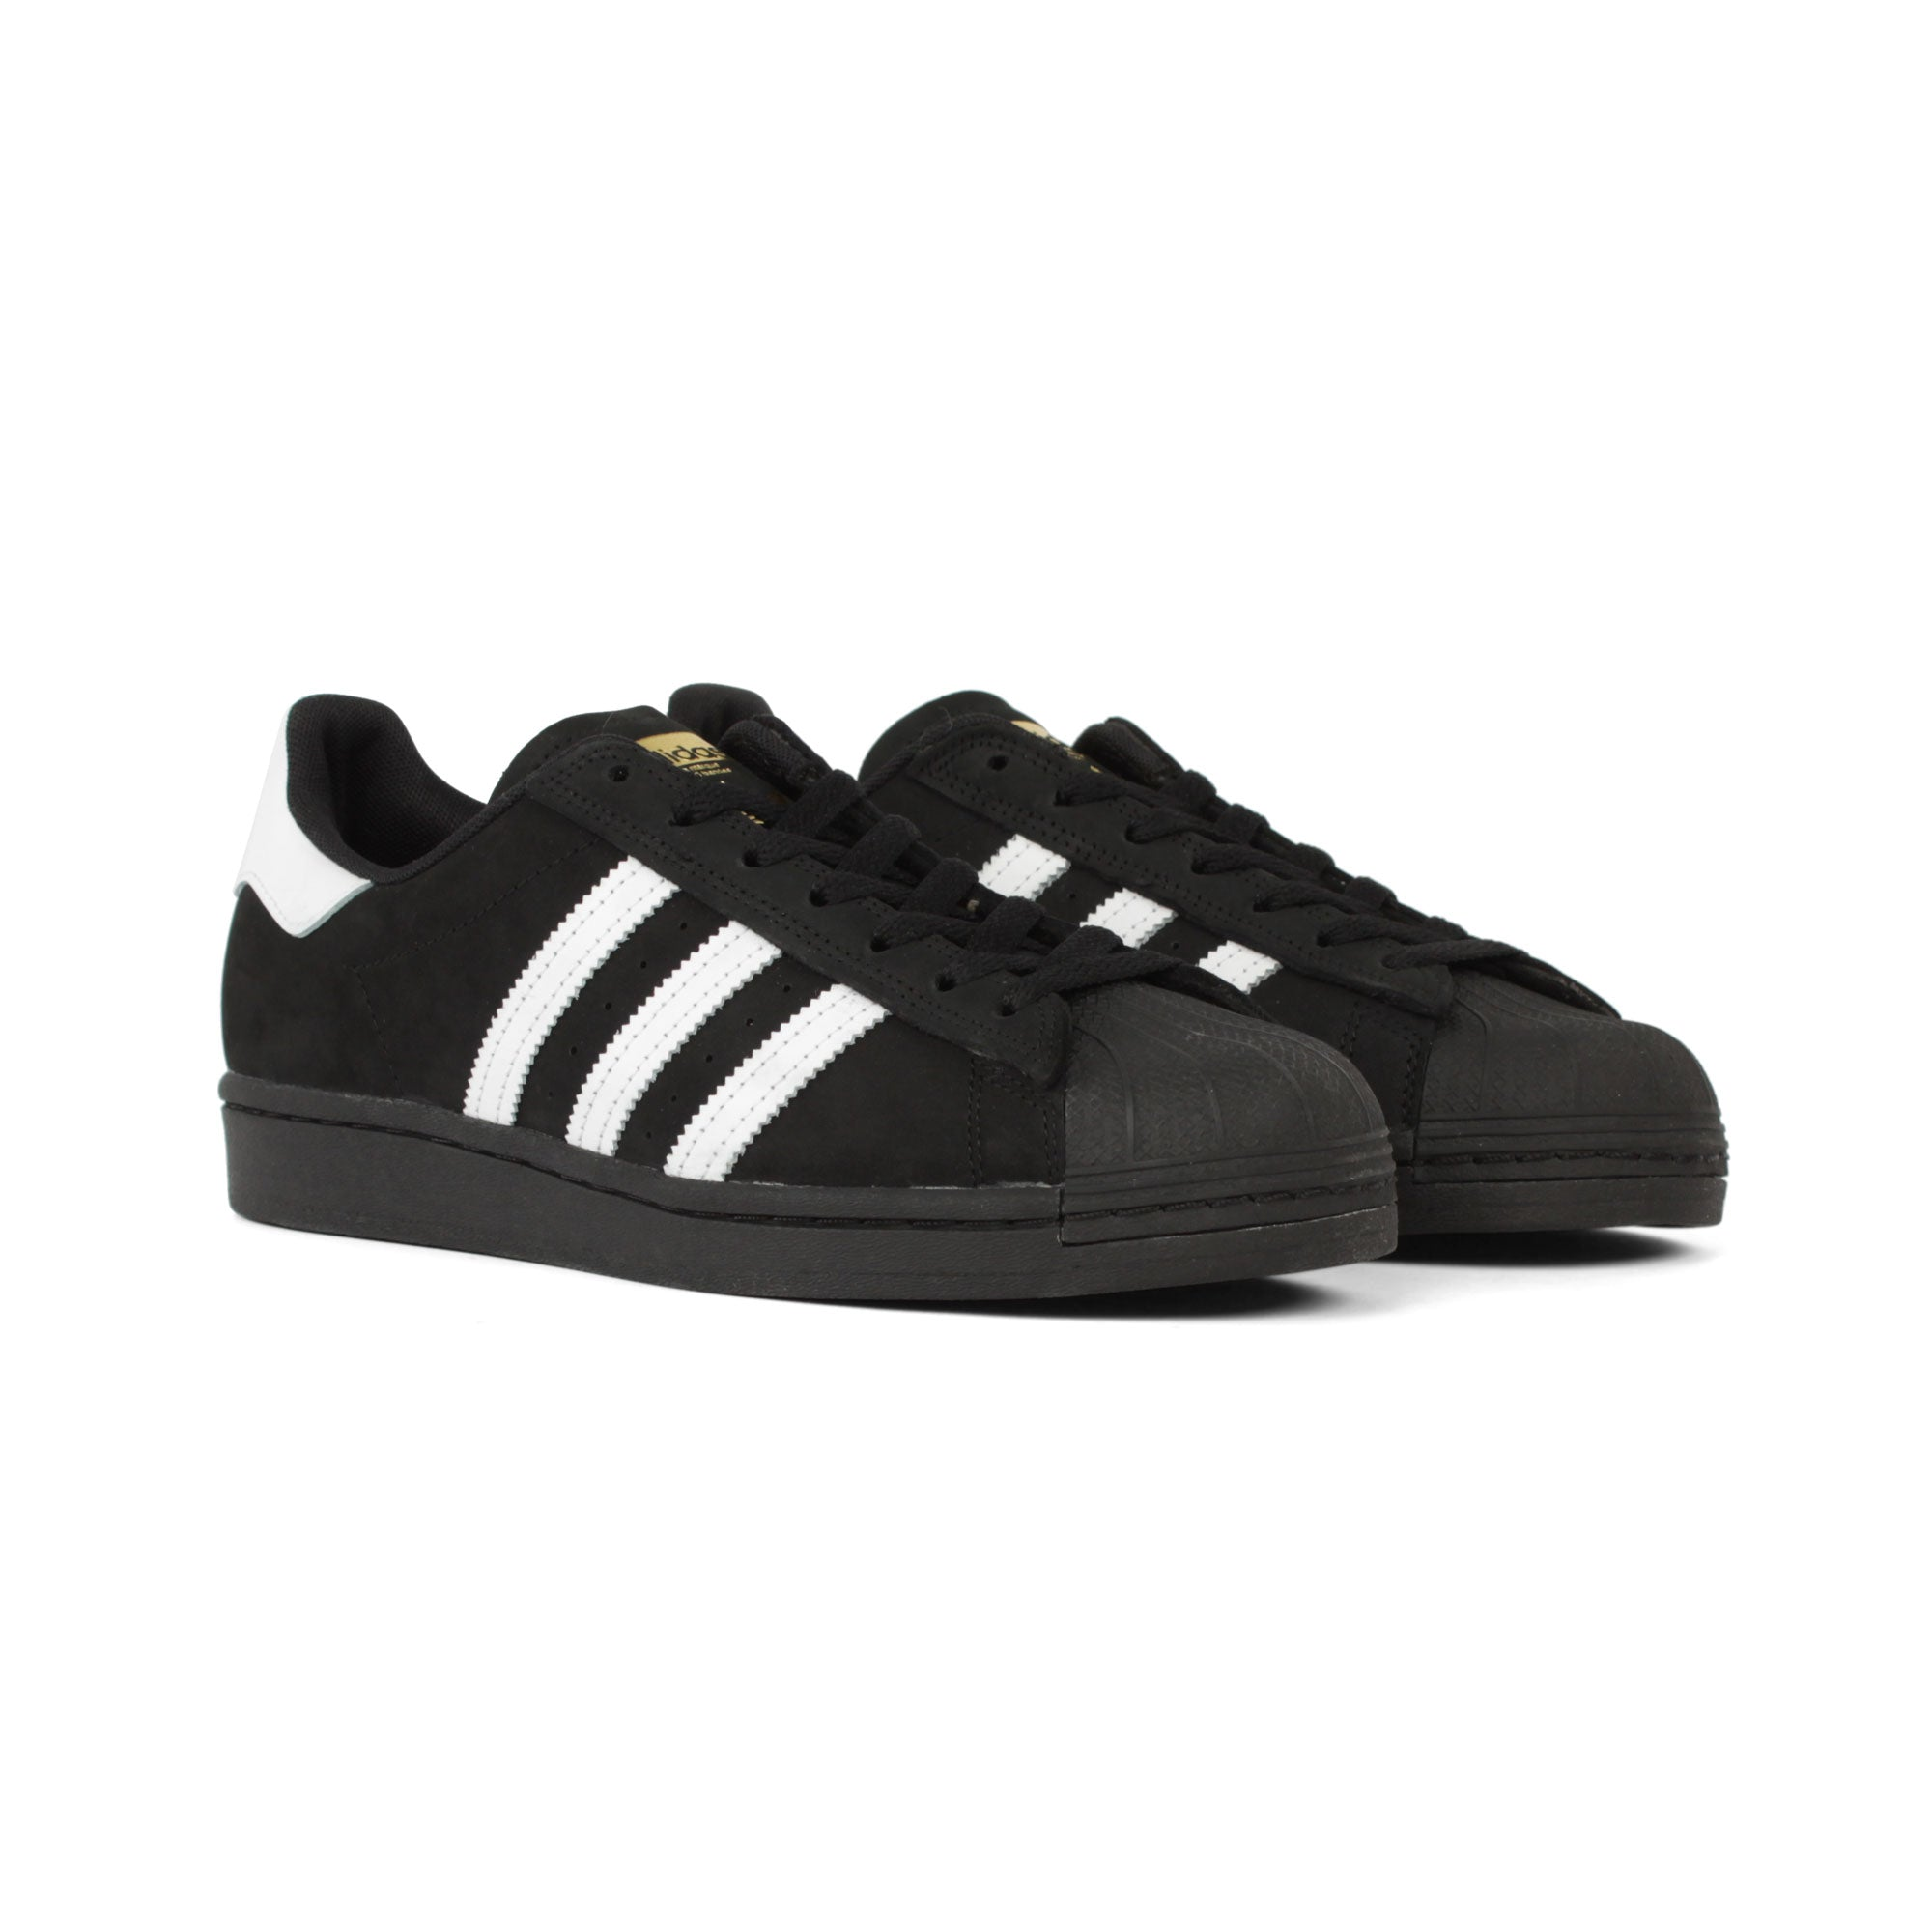 Adidas Superstar ADV Product Photo #2